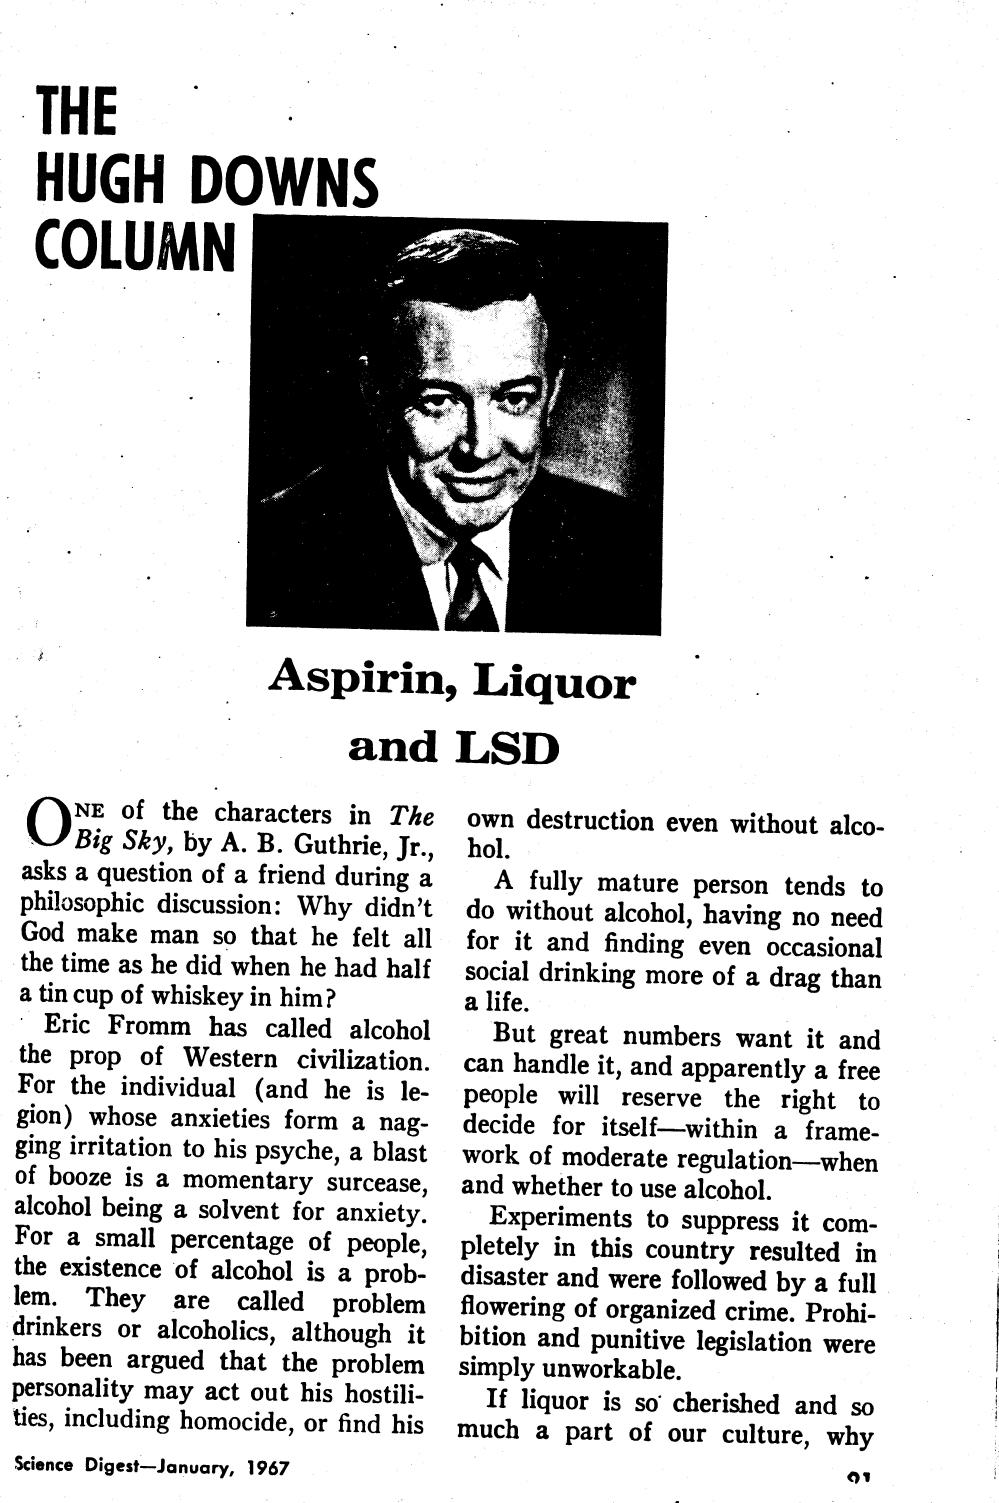 Science Digest, The Hugh Downs Column - Aspirin, Liquor and LSD January 1967 page 1